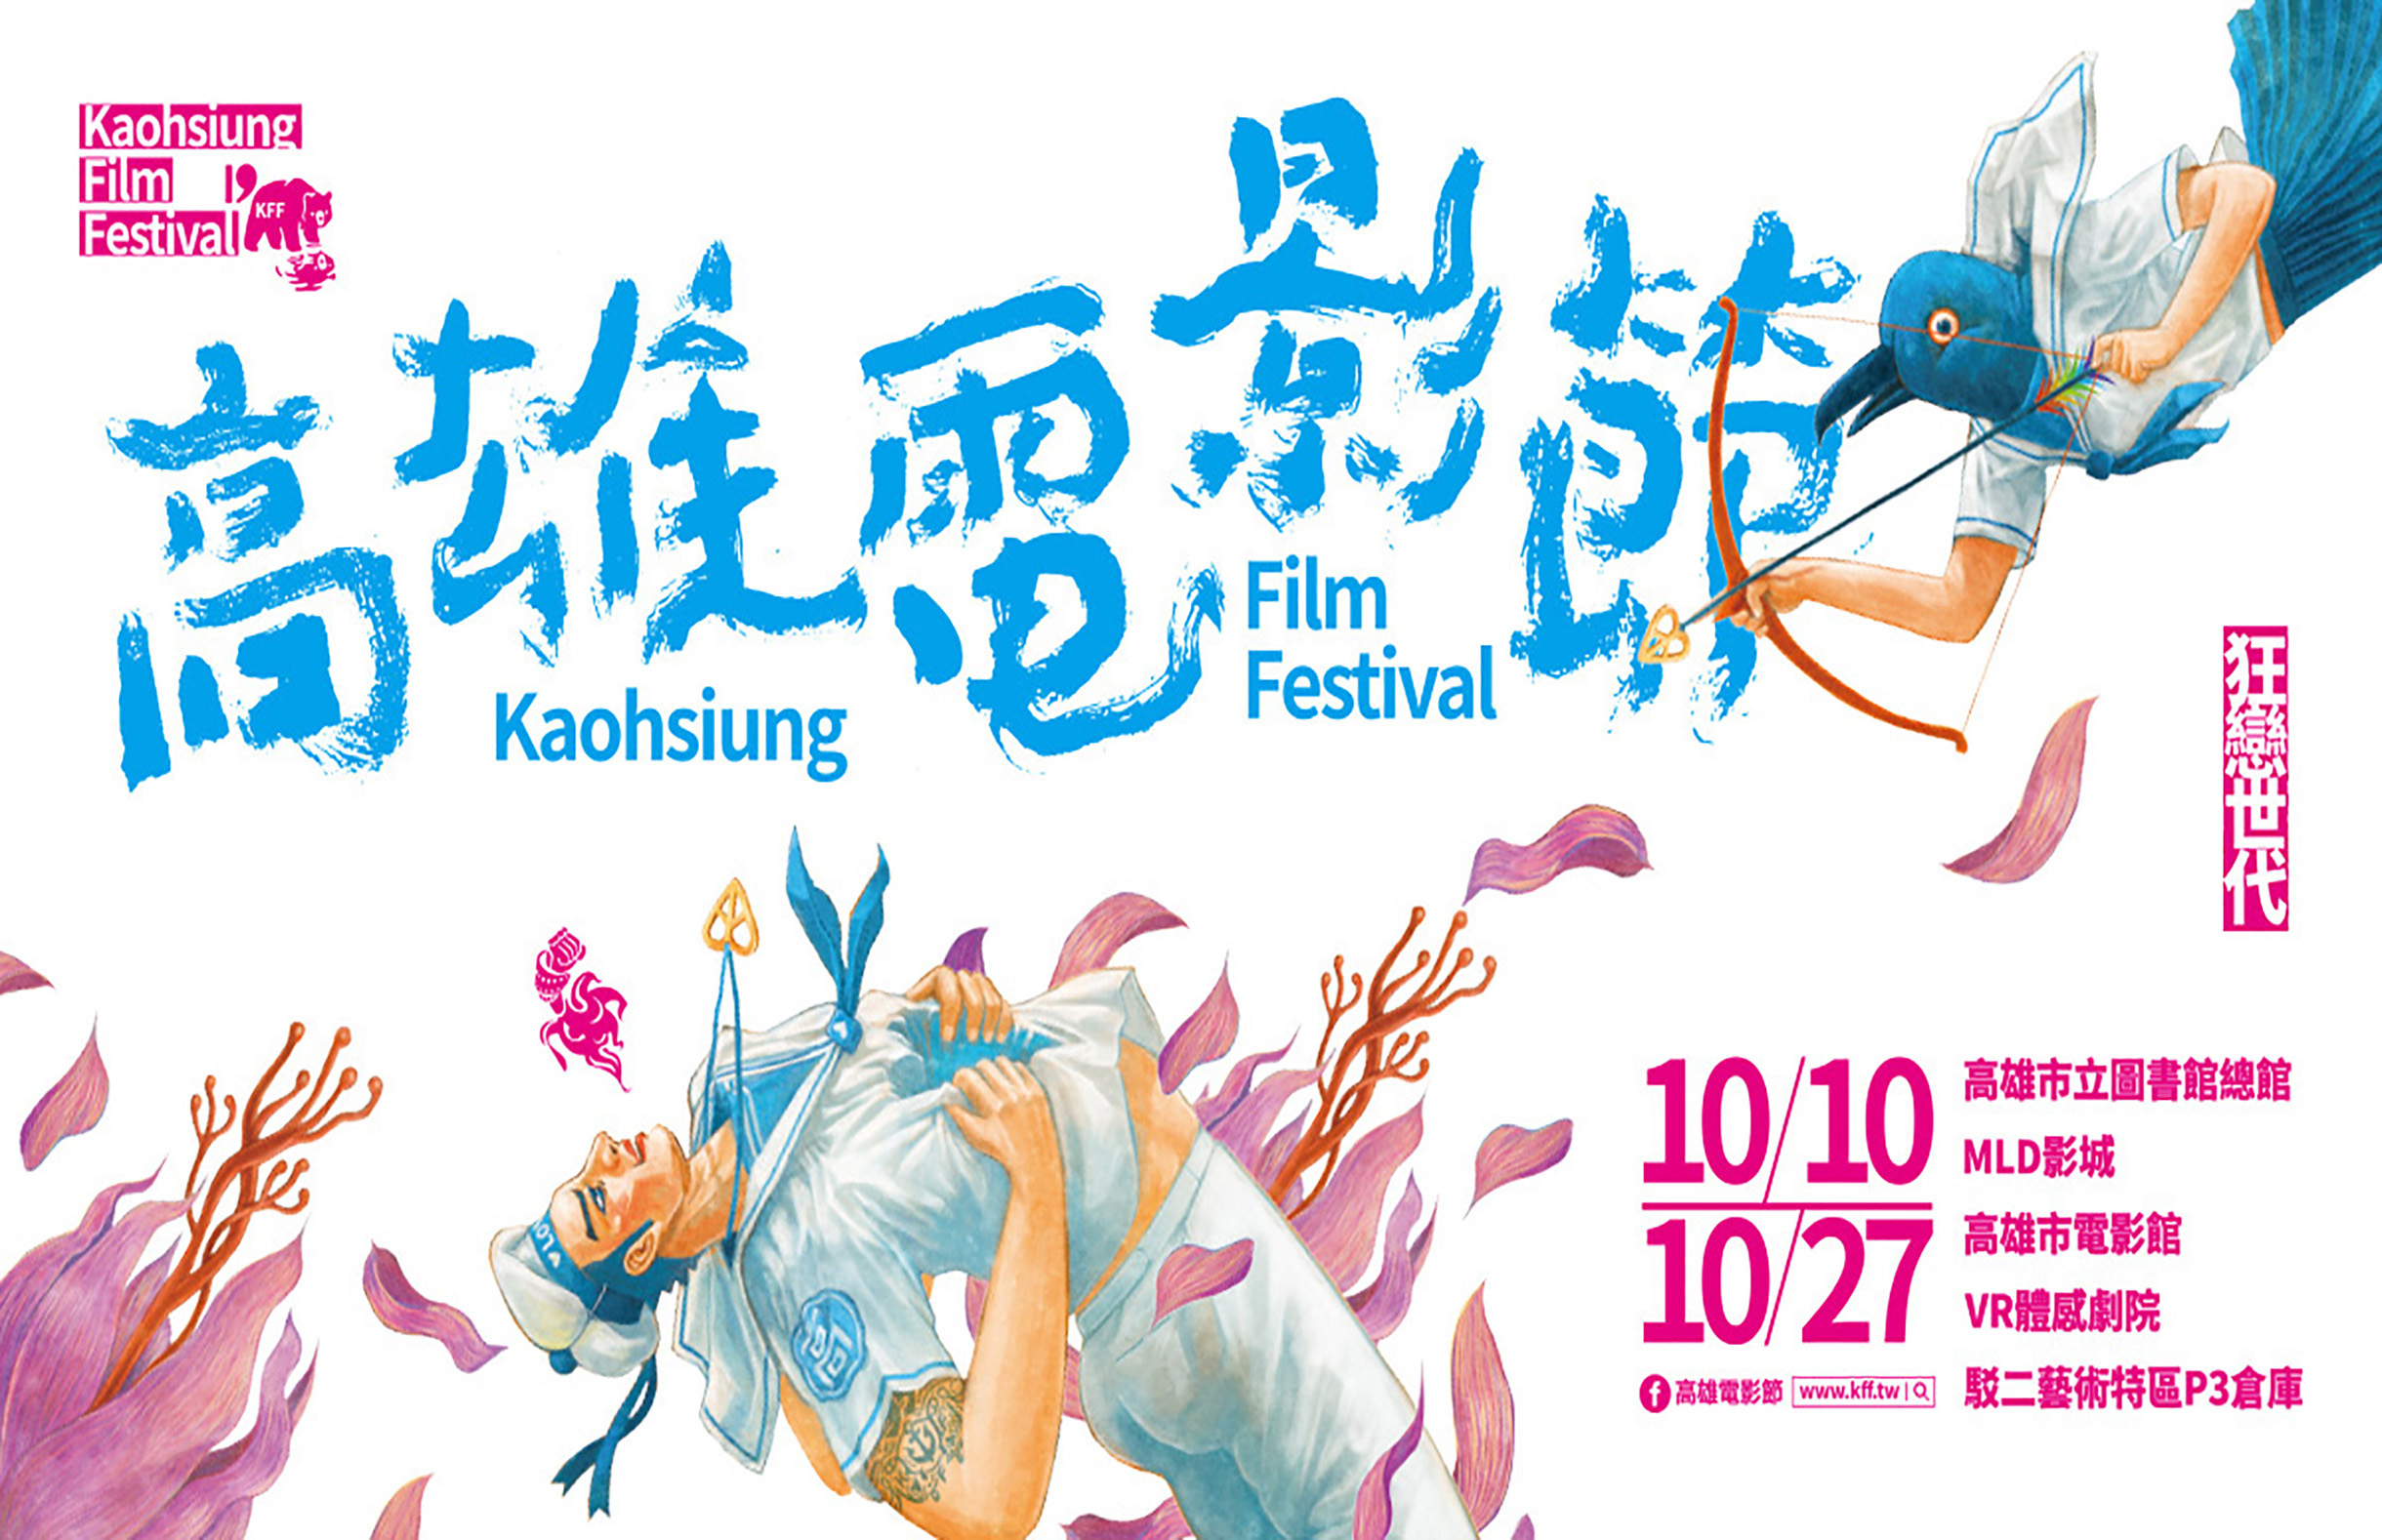 Lucid Realities attends the 2019 Kaohsiung film festival